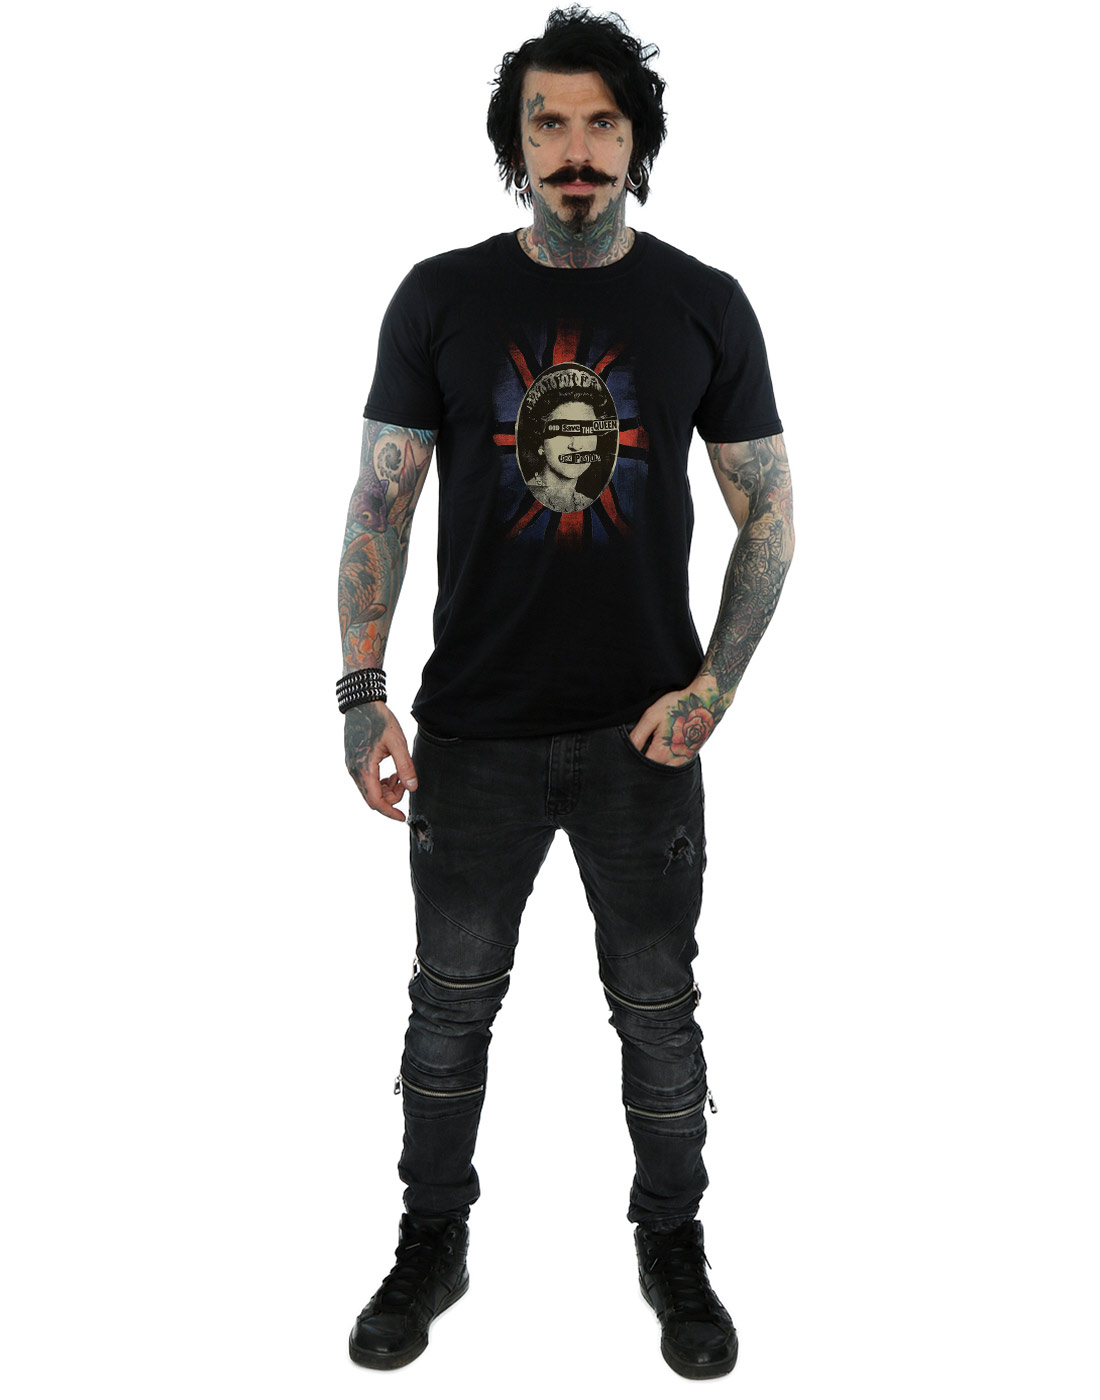 SEX-Pistols-UOMO-GOD-SAVE-THE-QUEEN-t-shirt miniatura 10